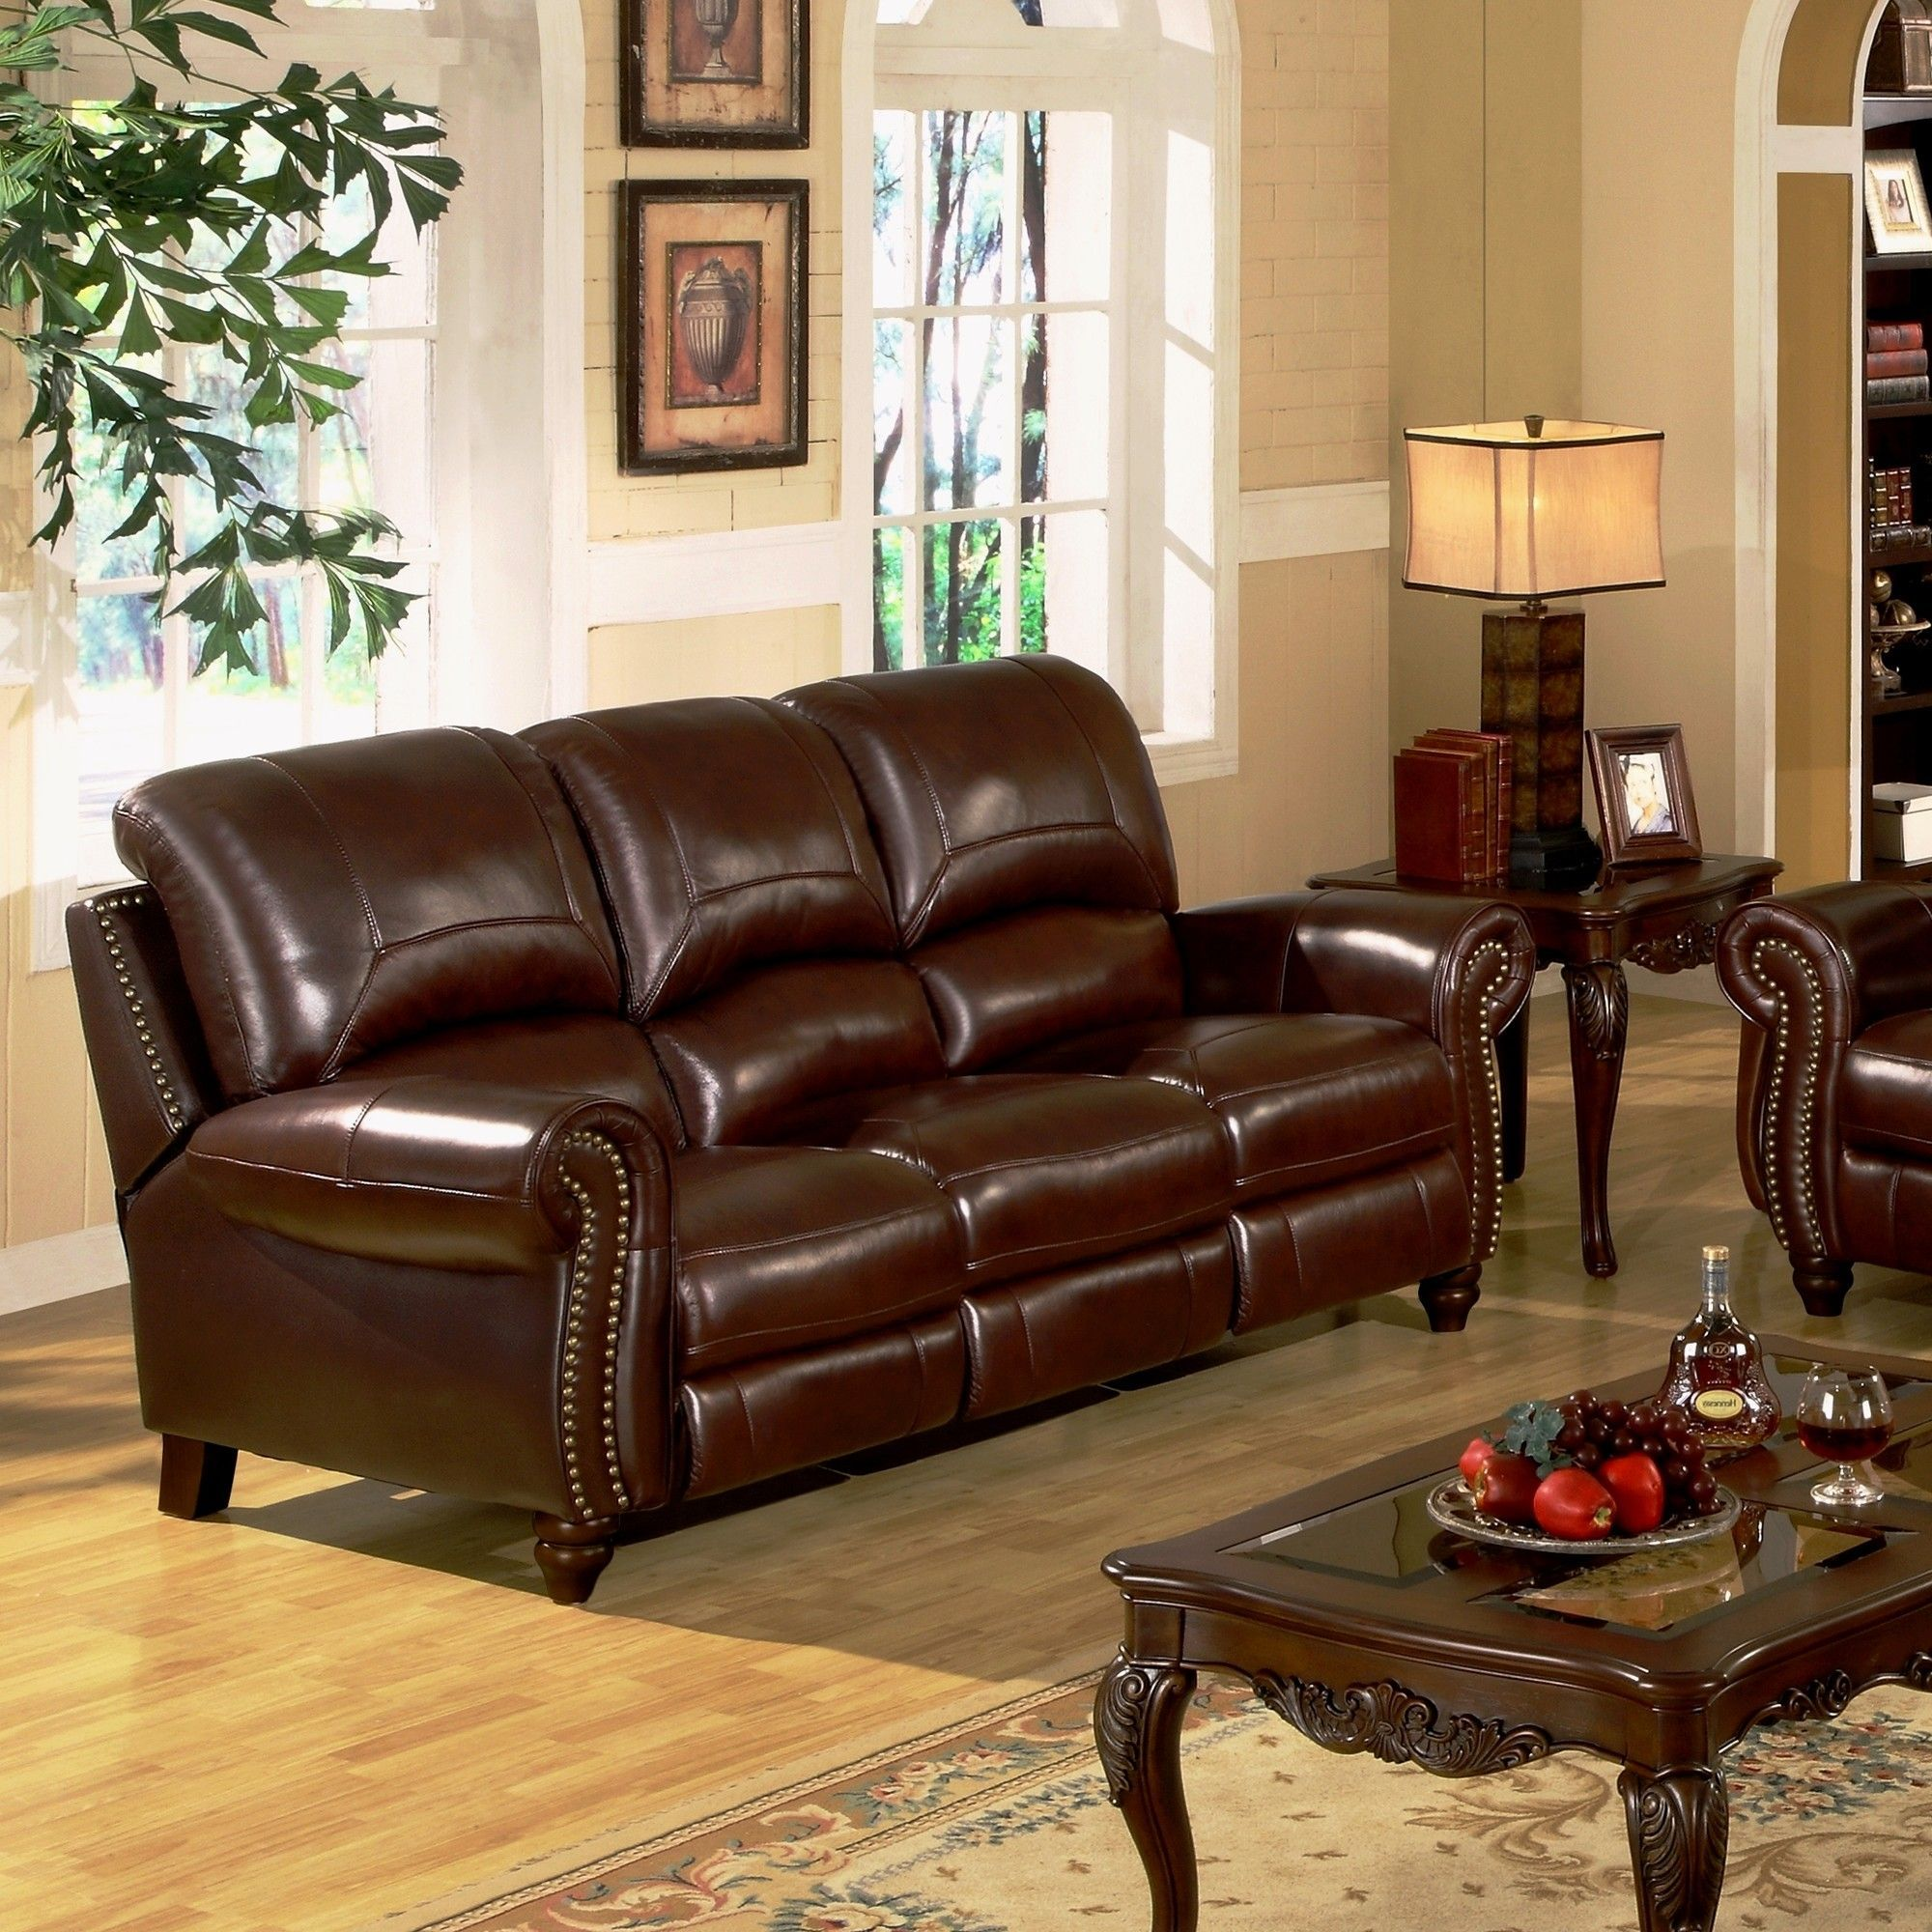 Amazing Abbyson Living Charlotte Leather Reclining Sofa Reviews Ibusinesslaw Wood Chair Design Ideas Ibusinesslaworg